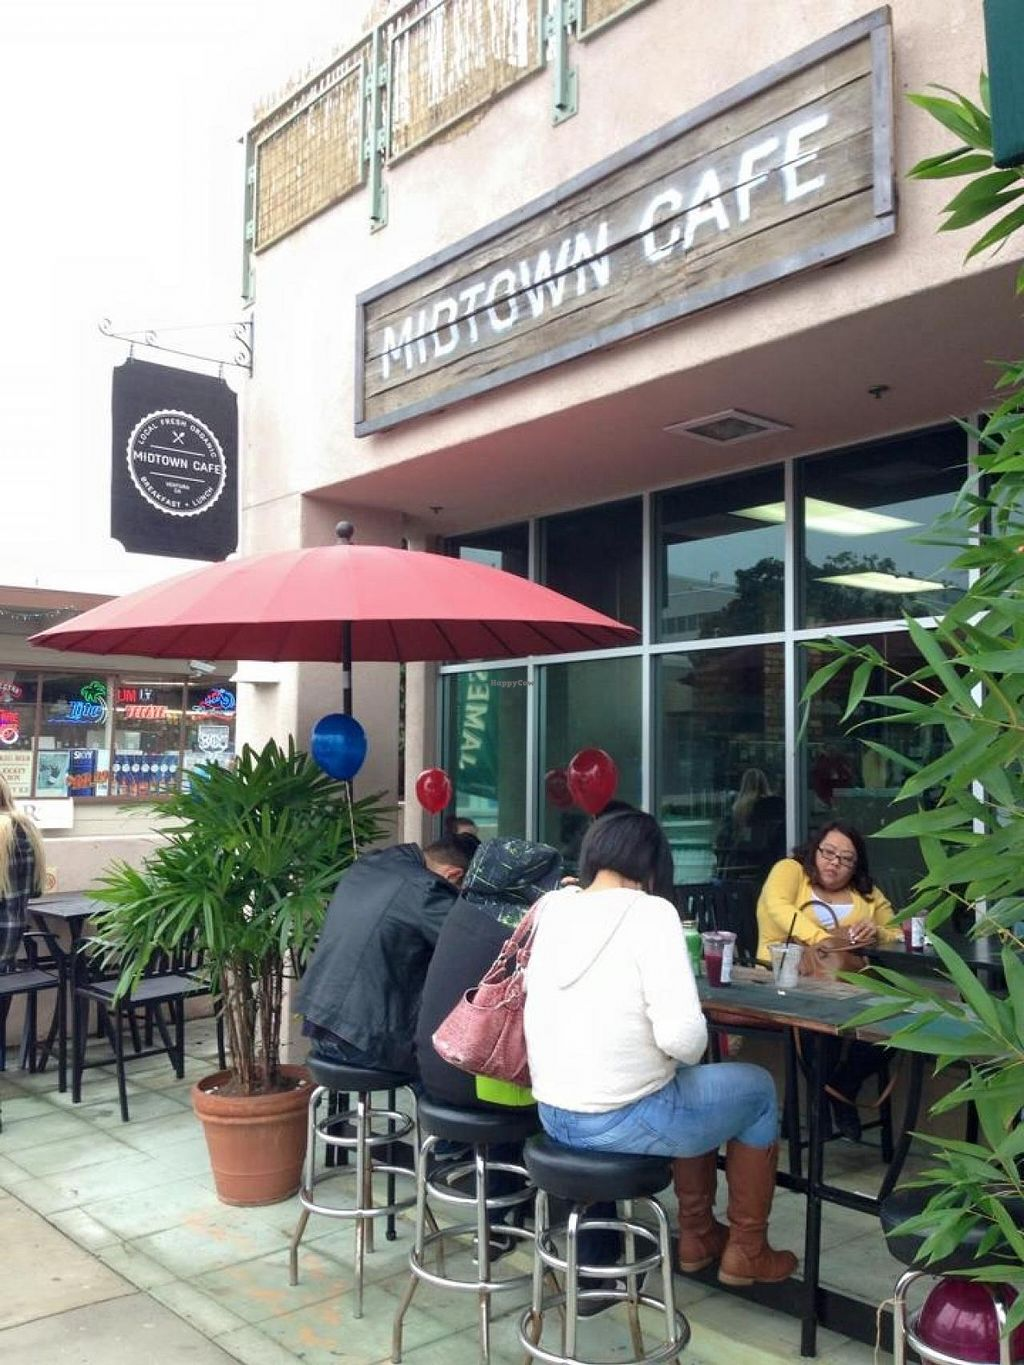 """Photo of Midtown Cafe  by <a href=""""/members/profile/community"""">community</a> <br/>Midtown Cafe  <br/> March 31, 2015  - <a href='/contact/abuse/image/44583/97473'>Report</a>"""